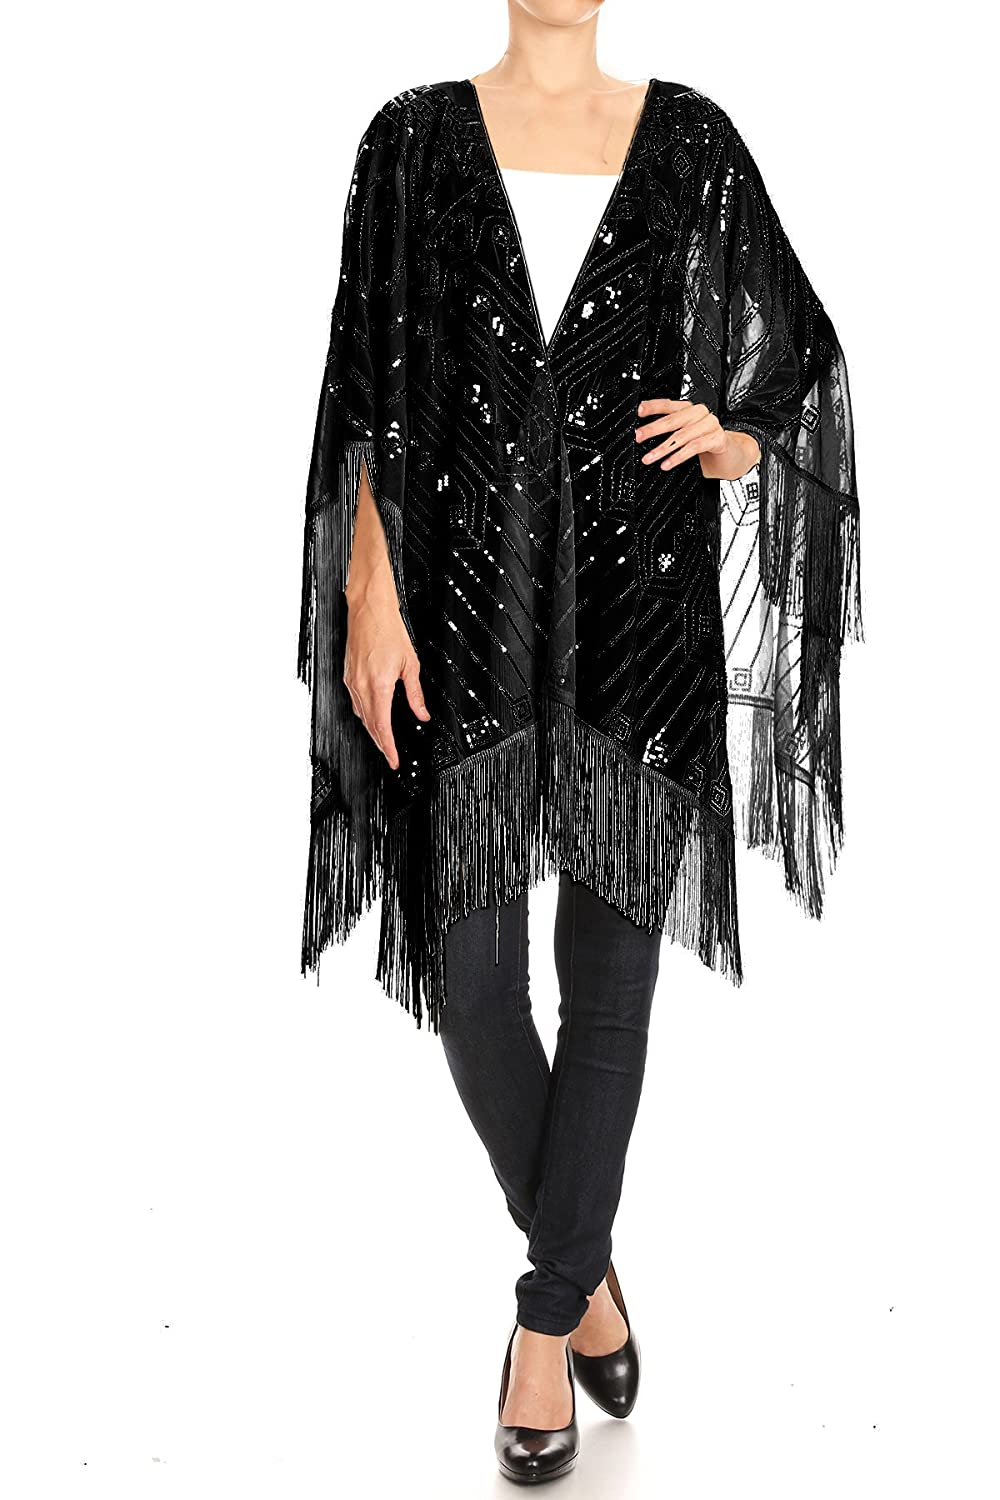 Vintage Coats & Jackets | Retro Coats and Jackets Anna-Kaci Womens Oversized Hand Beaded and Sequin Evening Shawl Wrap with Fringe $26.90 AT vintagedancer.com